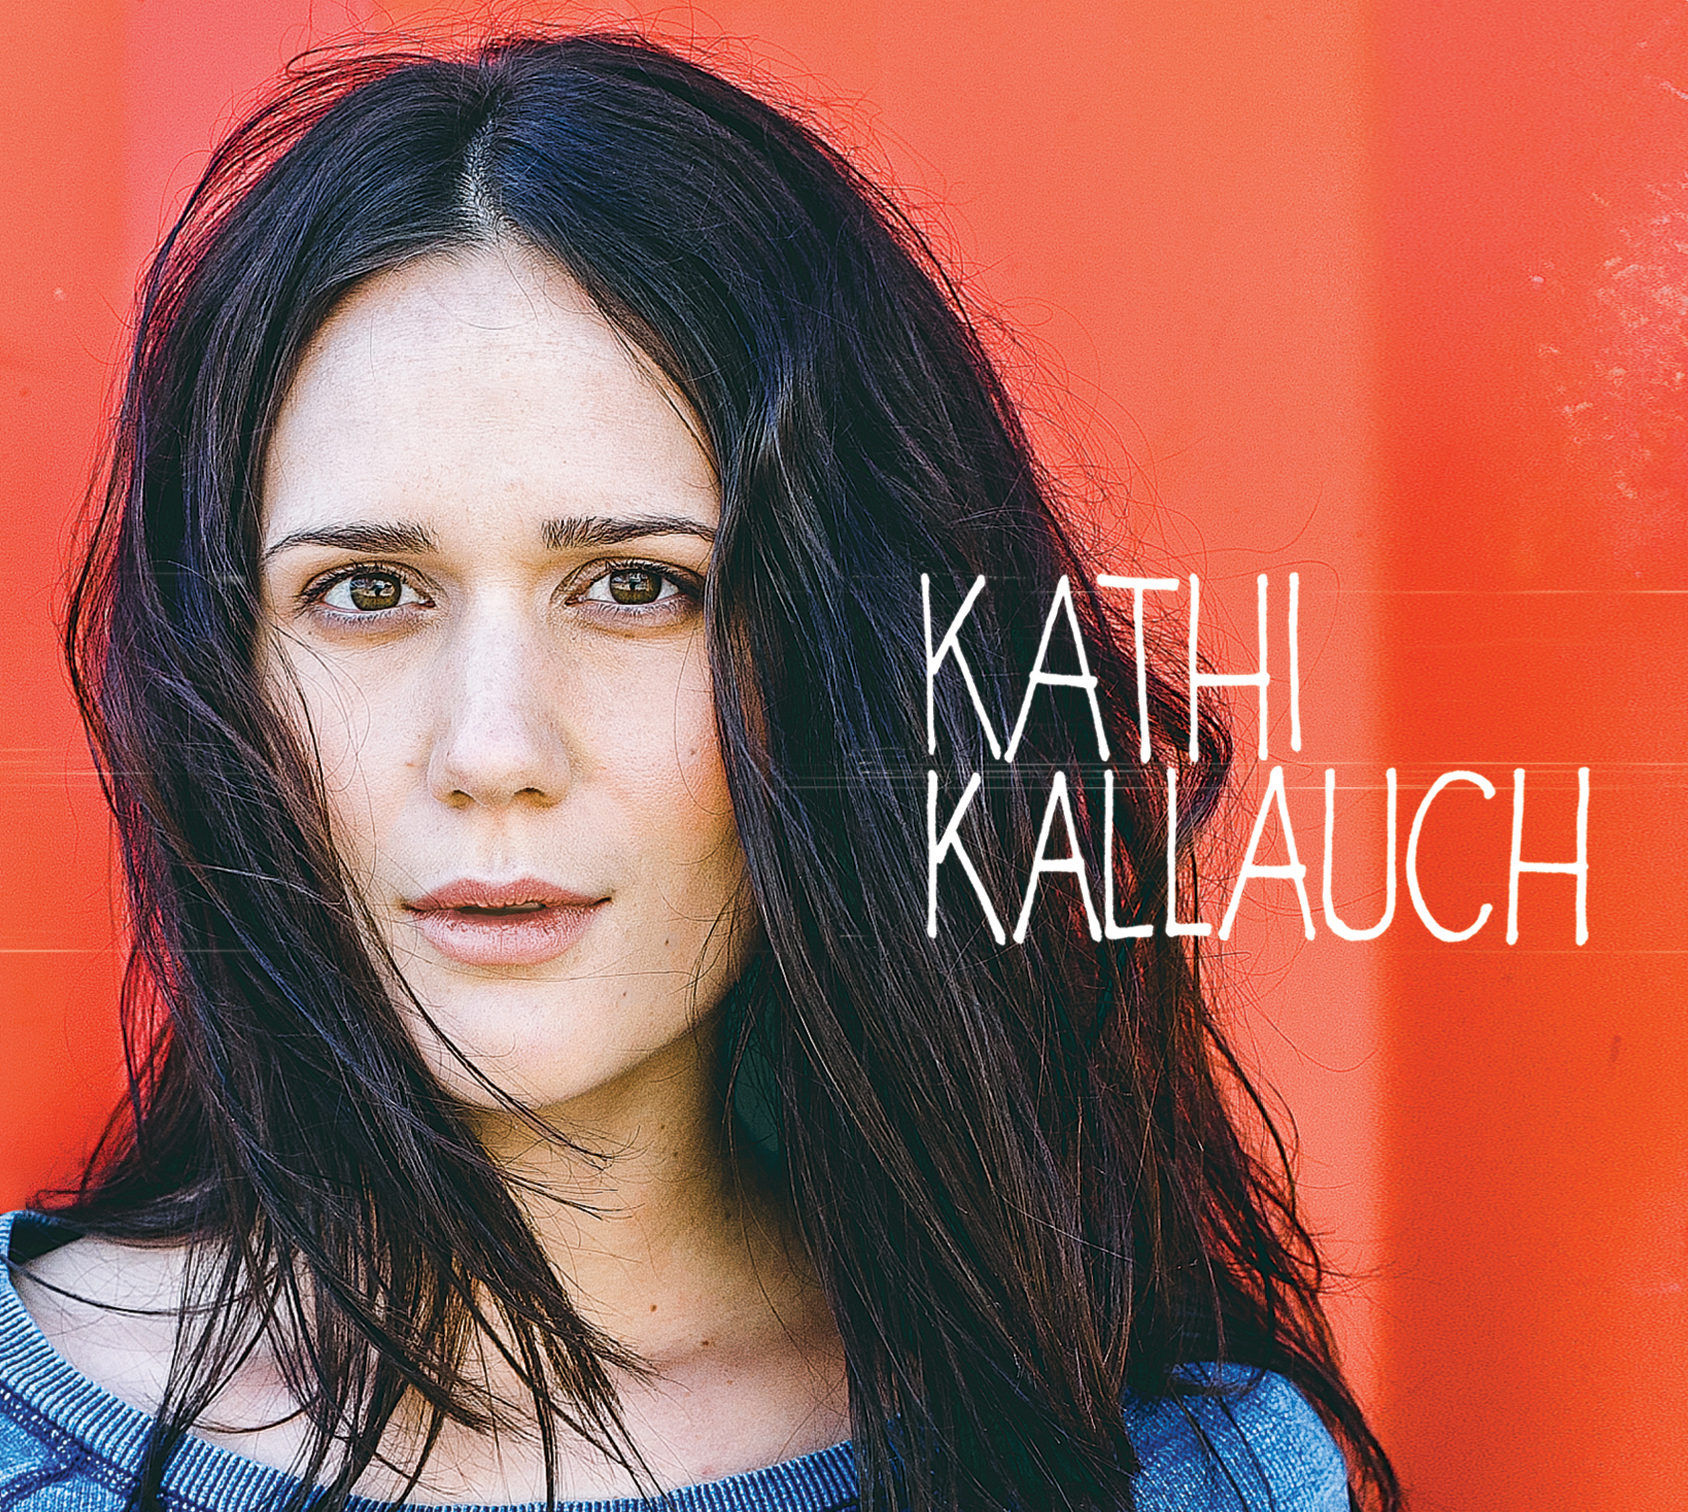 KATHI_ARTWORK_Digipack_Slot_Front